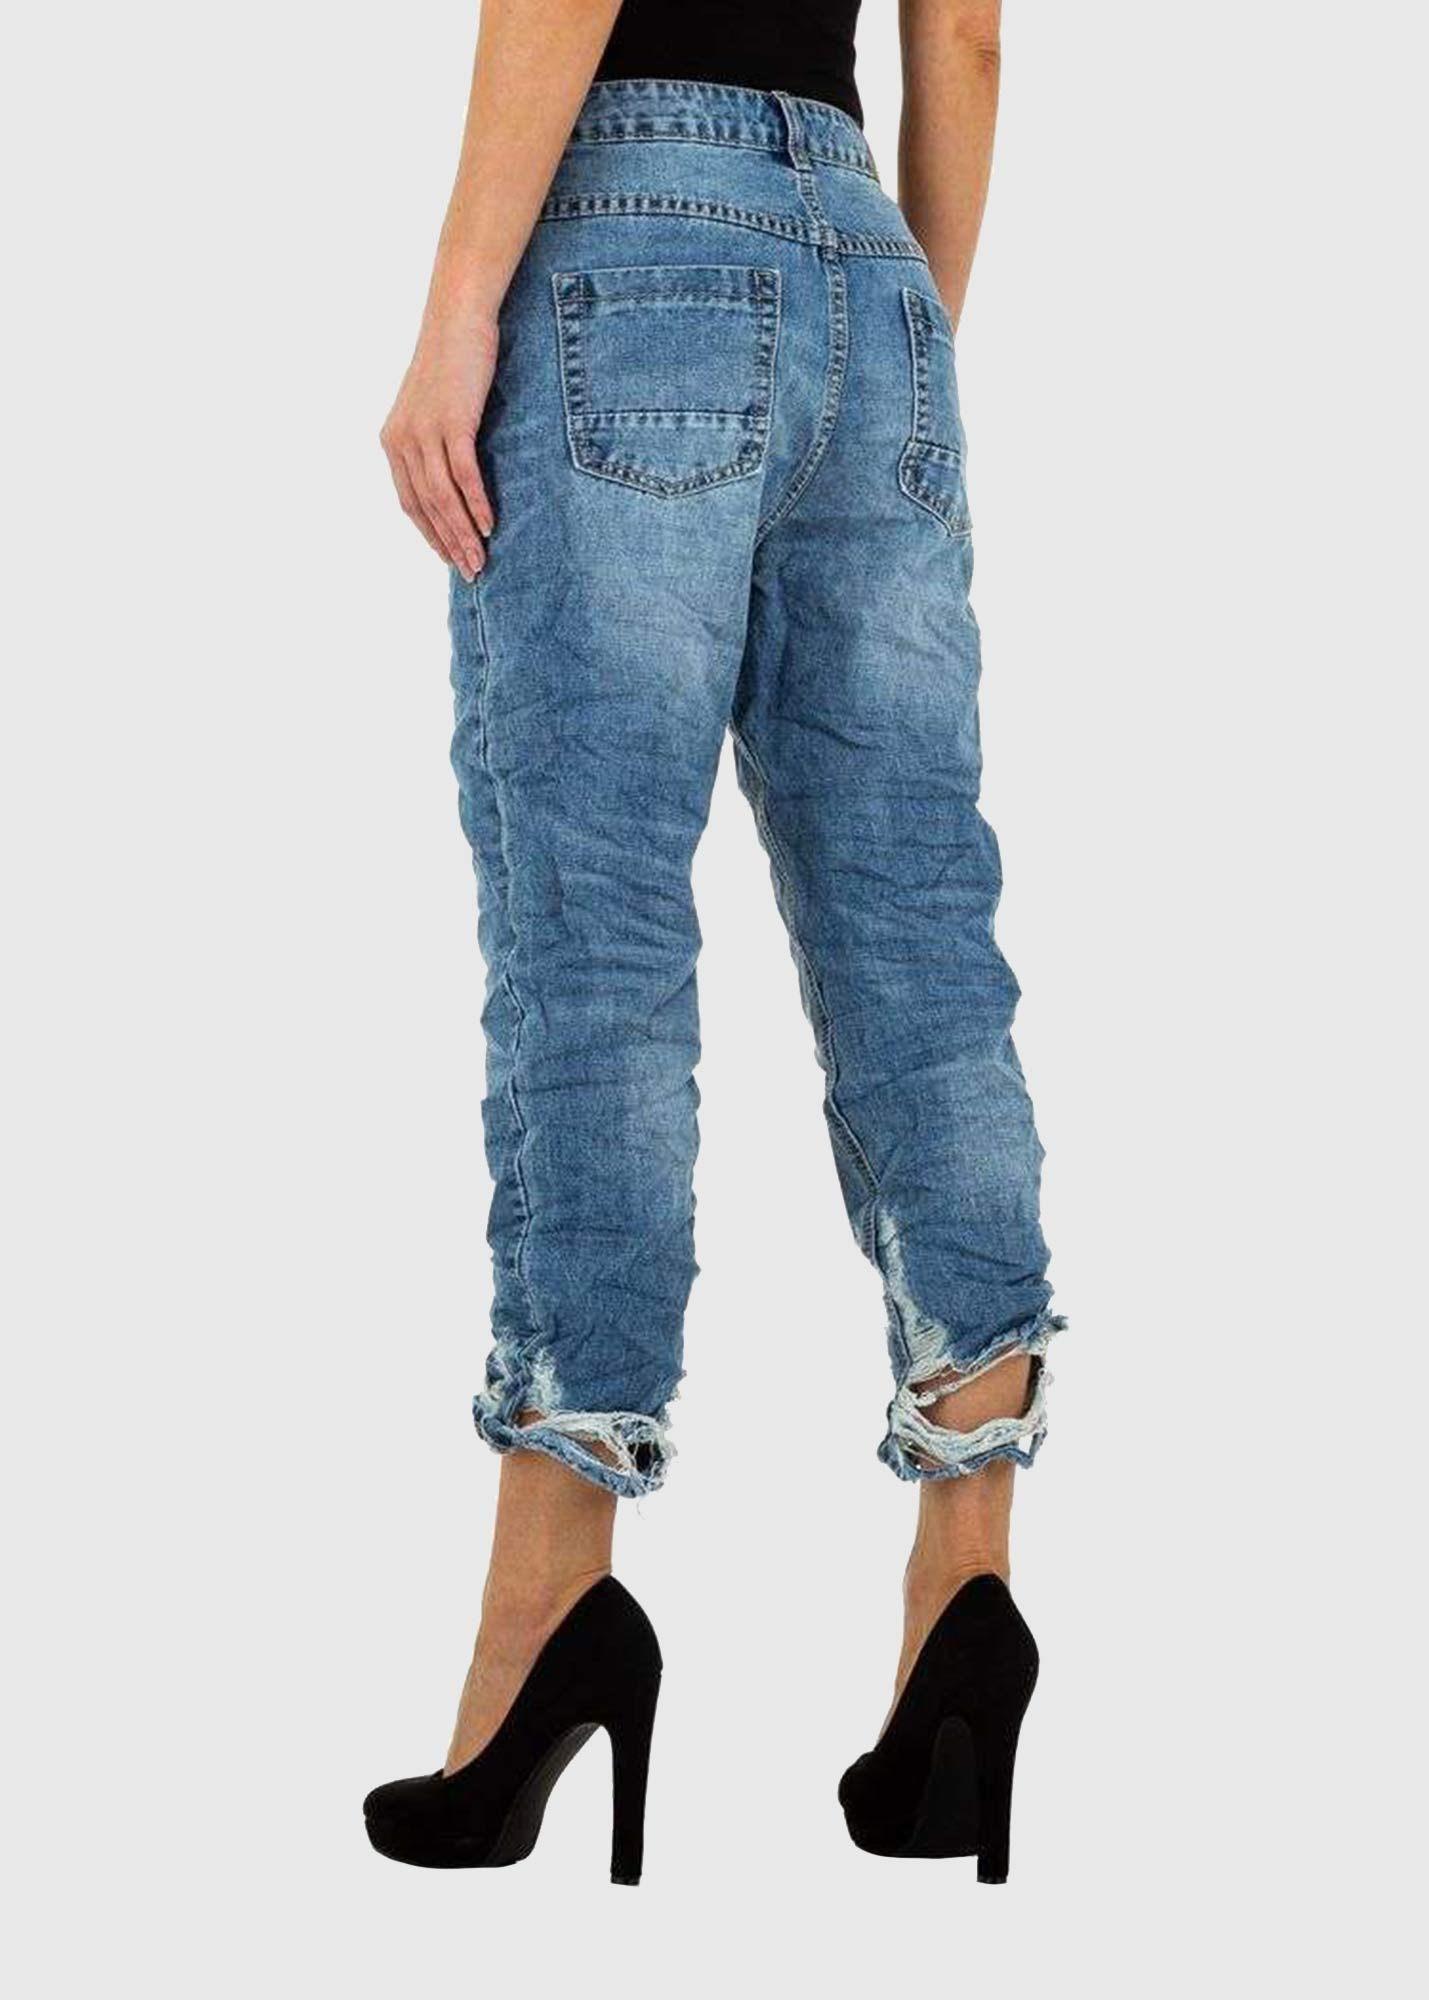 Photo №1 Ornella Skinny Fit blue ripped jeans